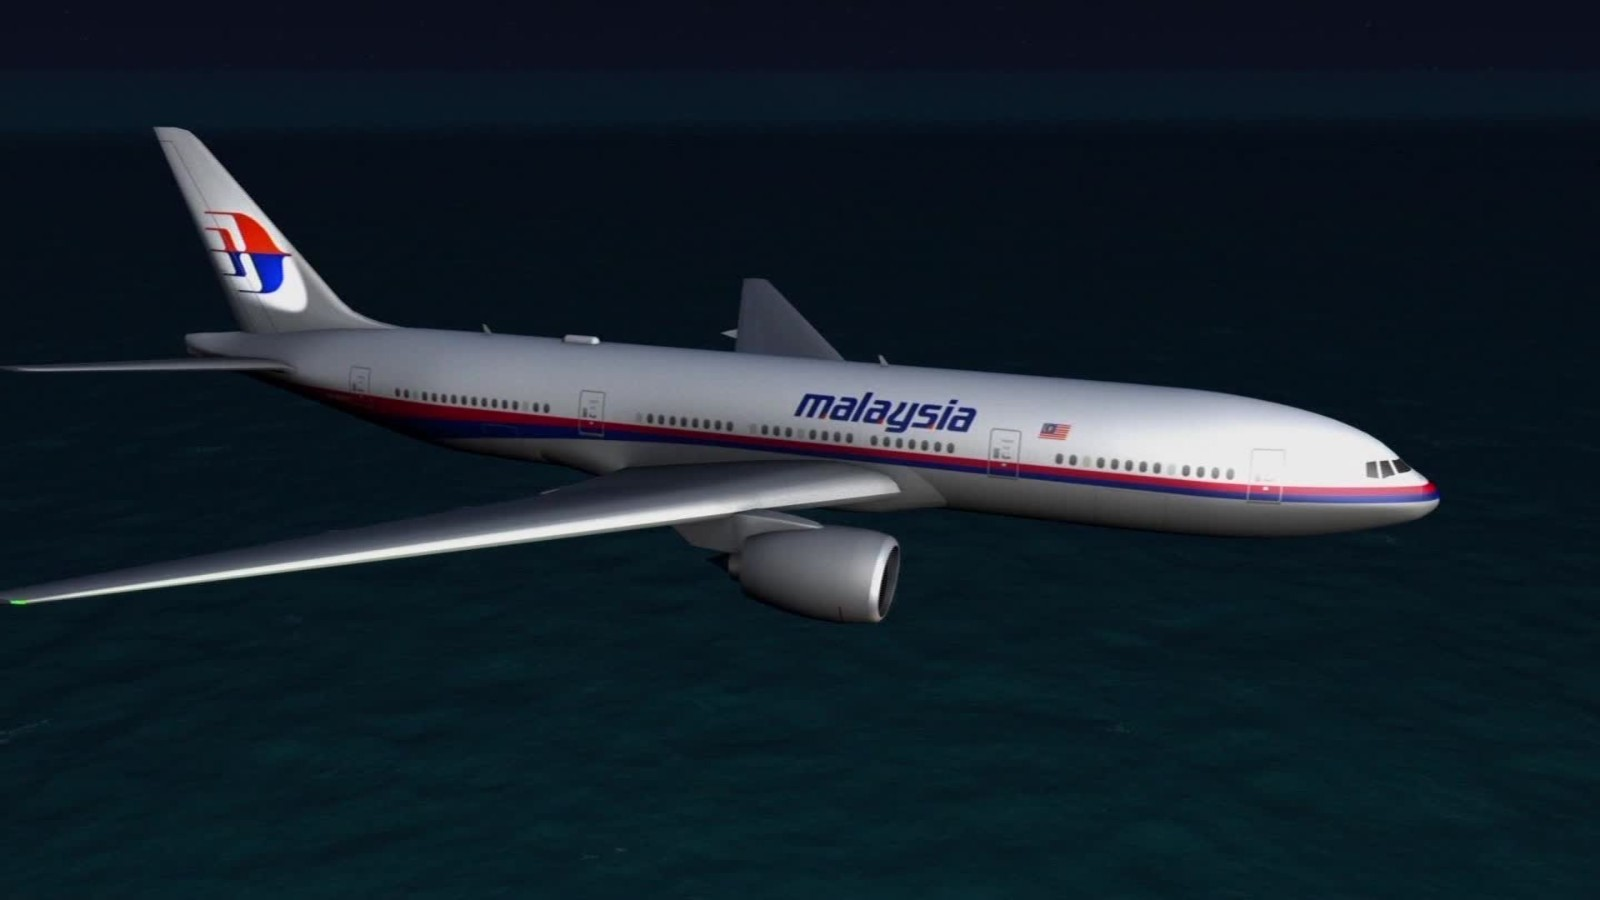 Search for missing jetliner ends after 4 years - CNN Video